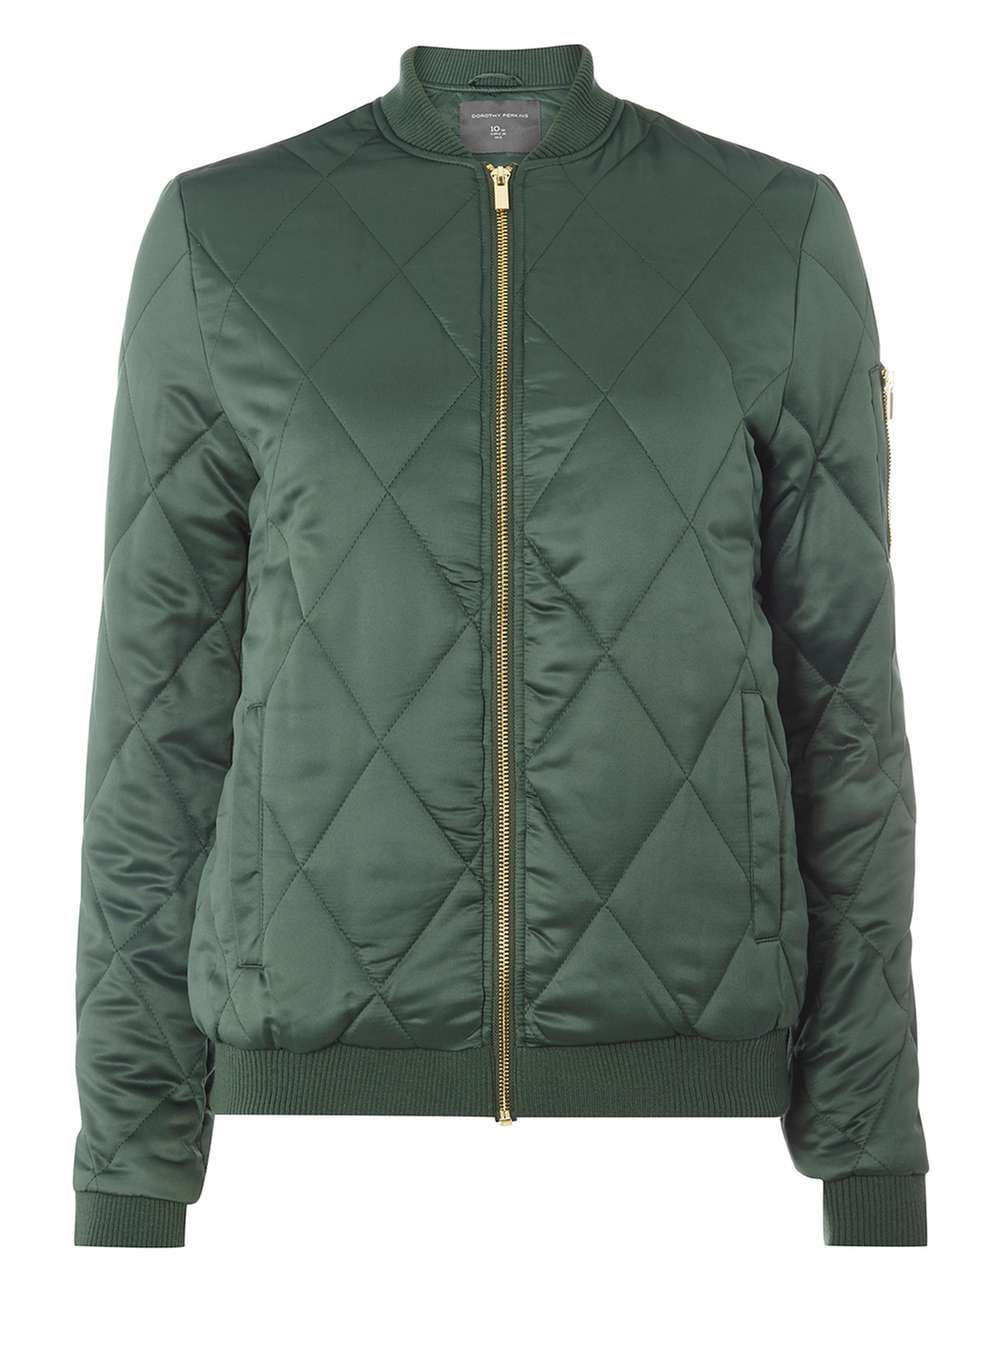 Womens **Tall Diamond Quilted Bomber Jacket Green - pattern: plain; collar: round collar/collarless; fit: slim fit; style: bomber; predominant colour: dark green; occasions: casual; length: standard; fibres: polyester/polyamide - 100%; sleeve length: long sleeve; sleeve style: standard; texture group: technical outdoor fabrics; collar break: high; pattern type: fabric; embellishment: quilted; season: a/w 2016; wardrobe: highlight